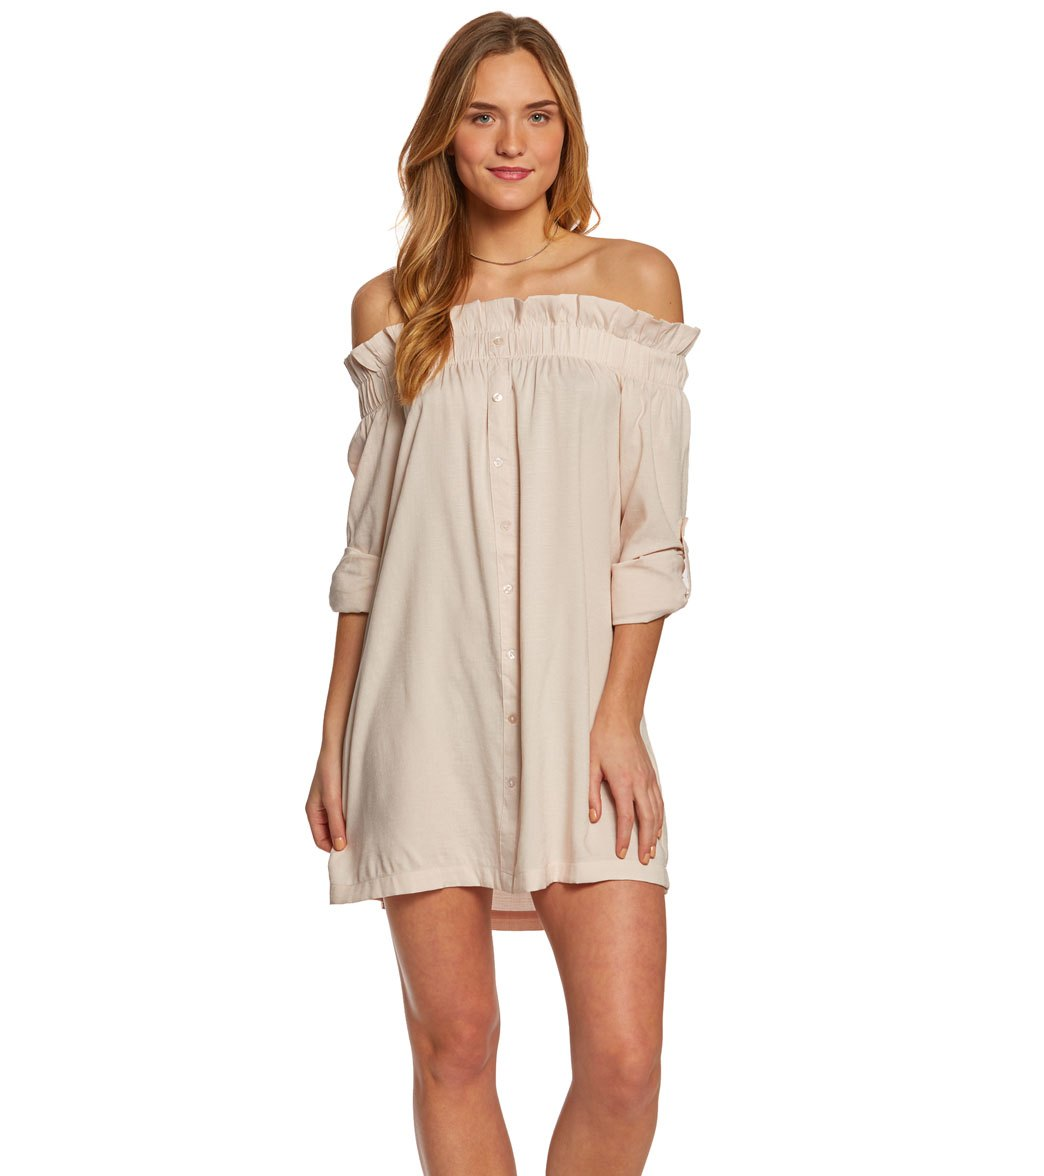 34463368e5dae MINKPINK Business Class Off Shoulder Dress at SwimOutlet.com - Free Shipping